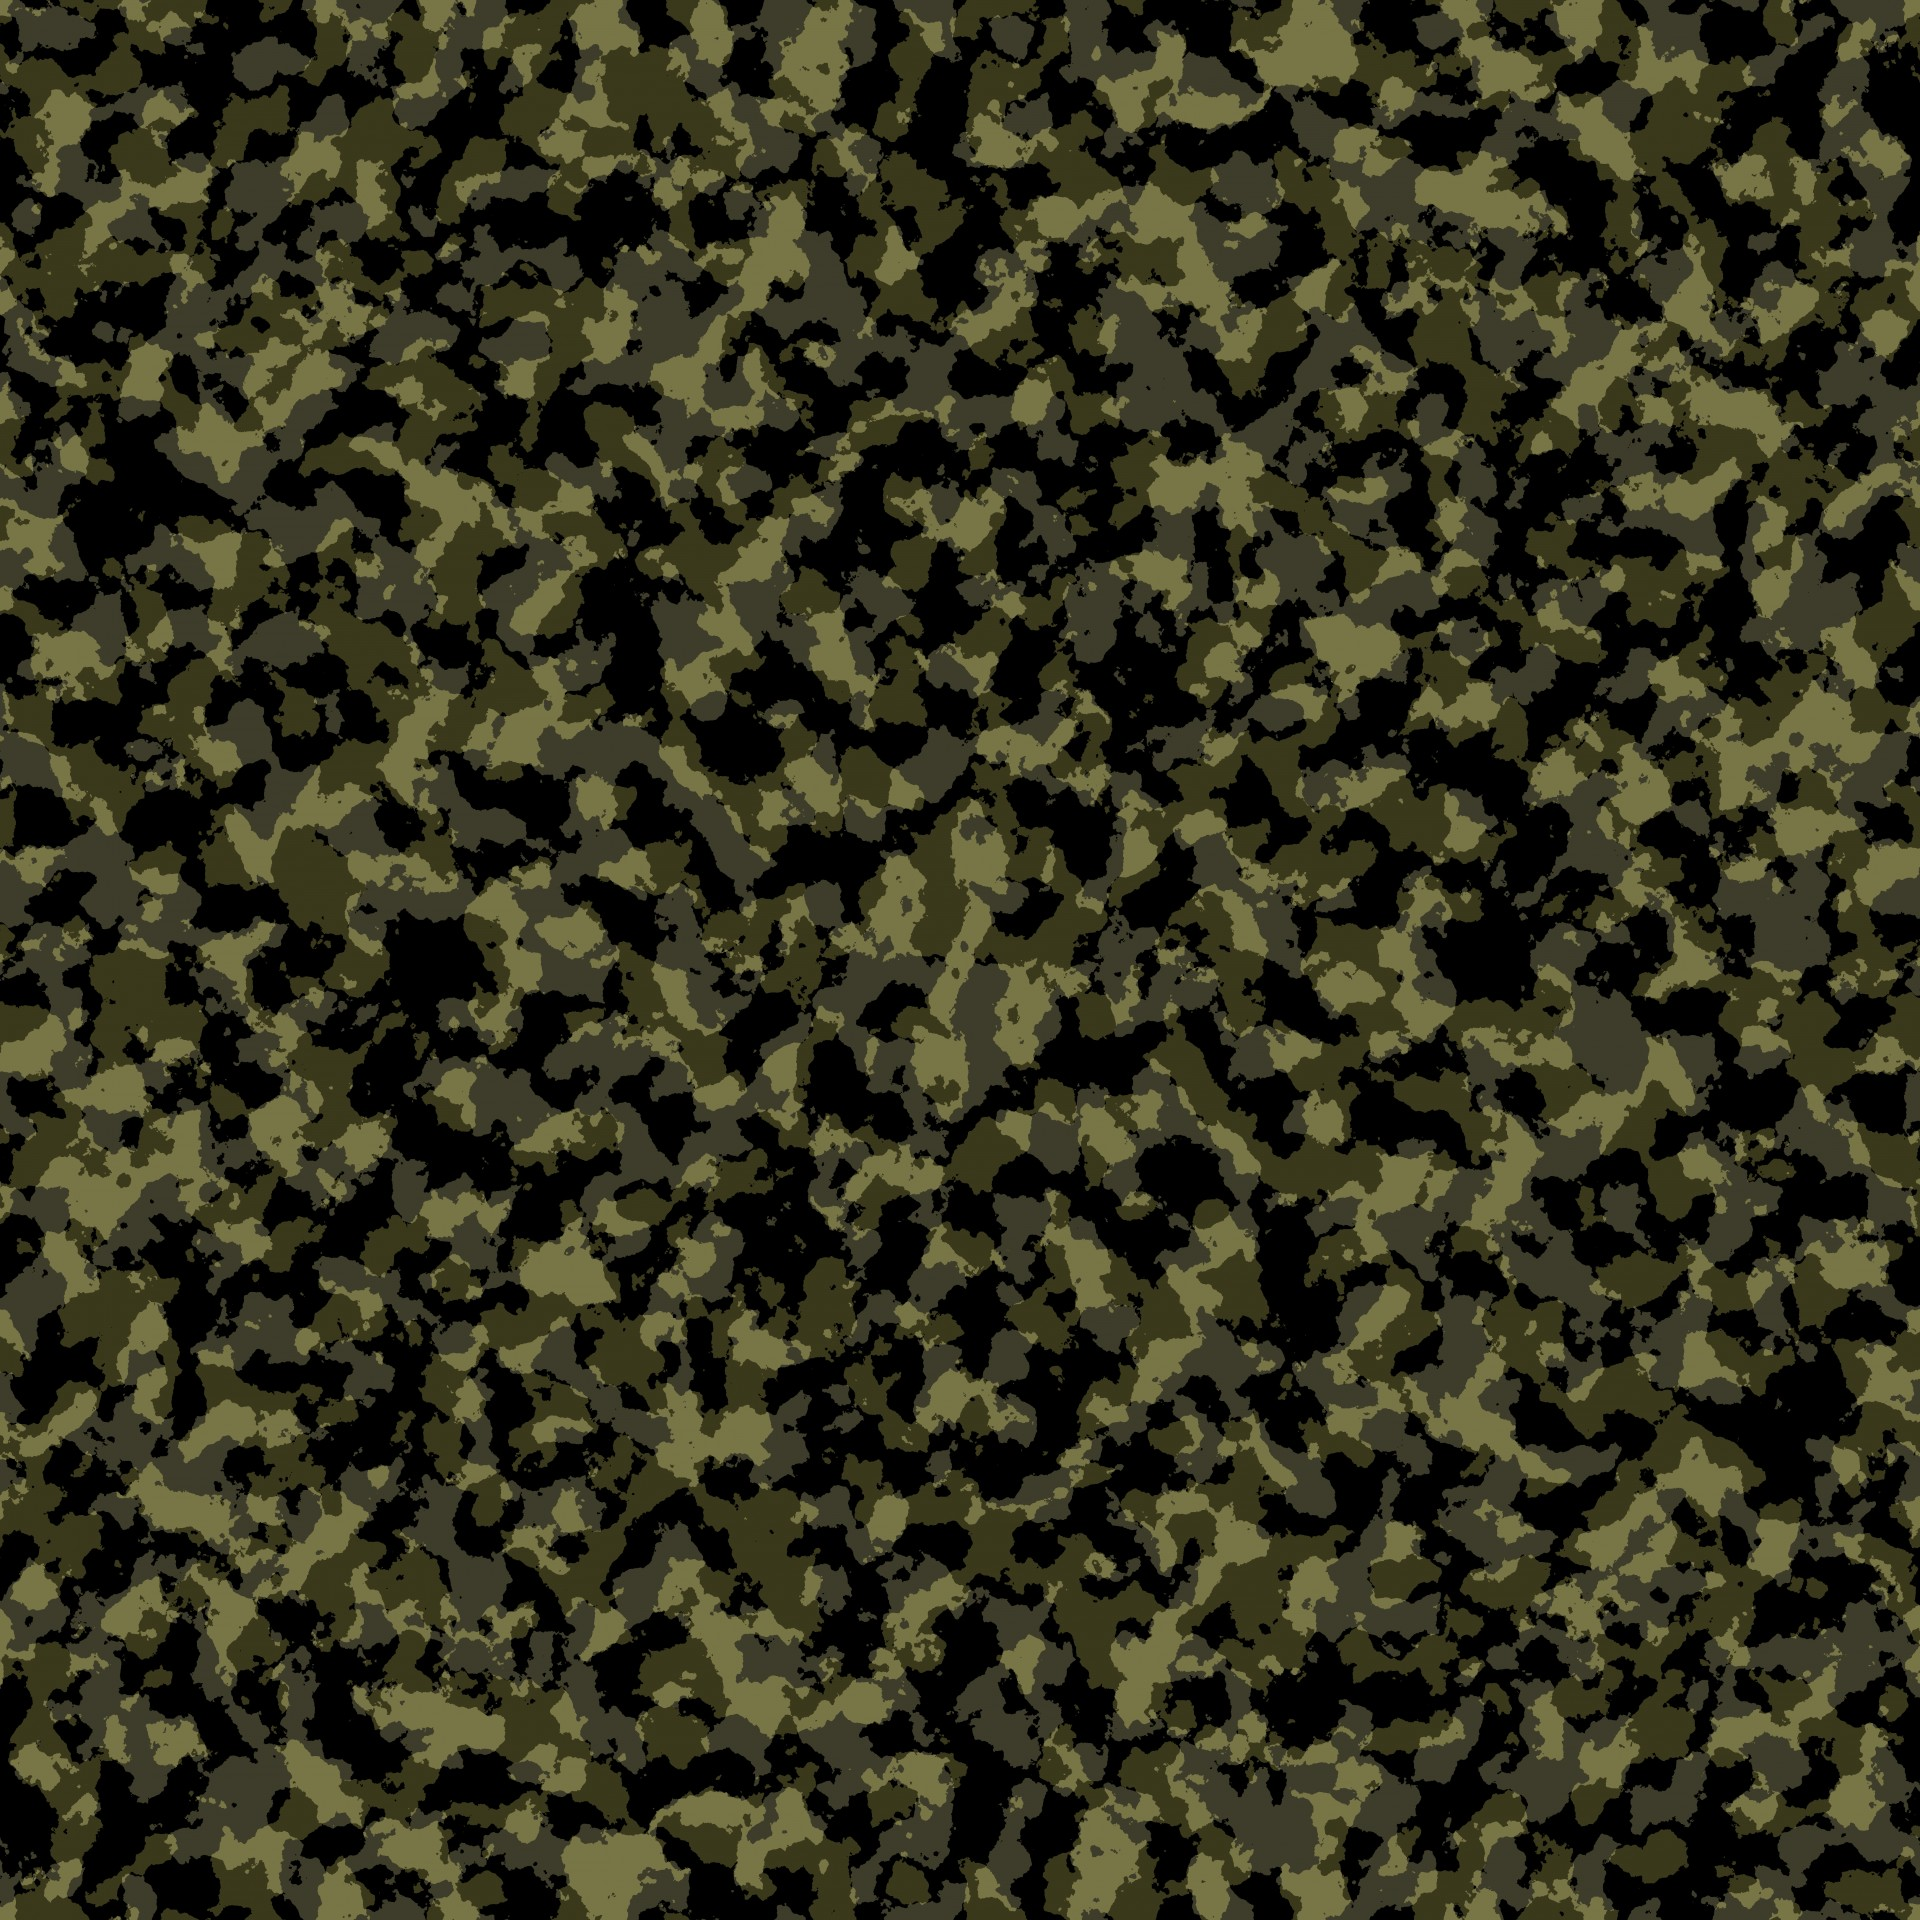 Military Camouflage Wallpaper Hd Camouflage Backing Paper Free Stock Photo Public Domain